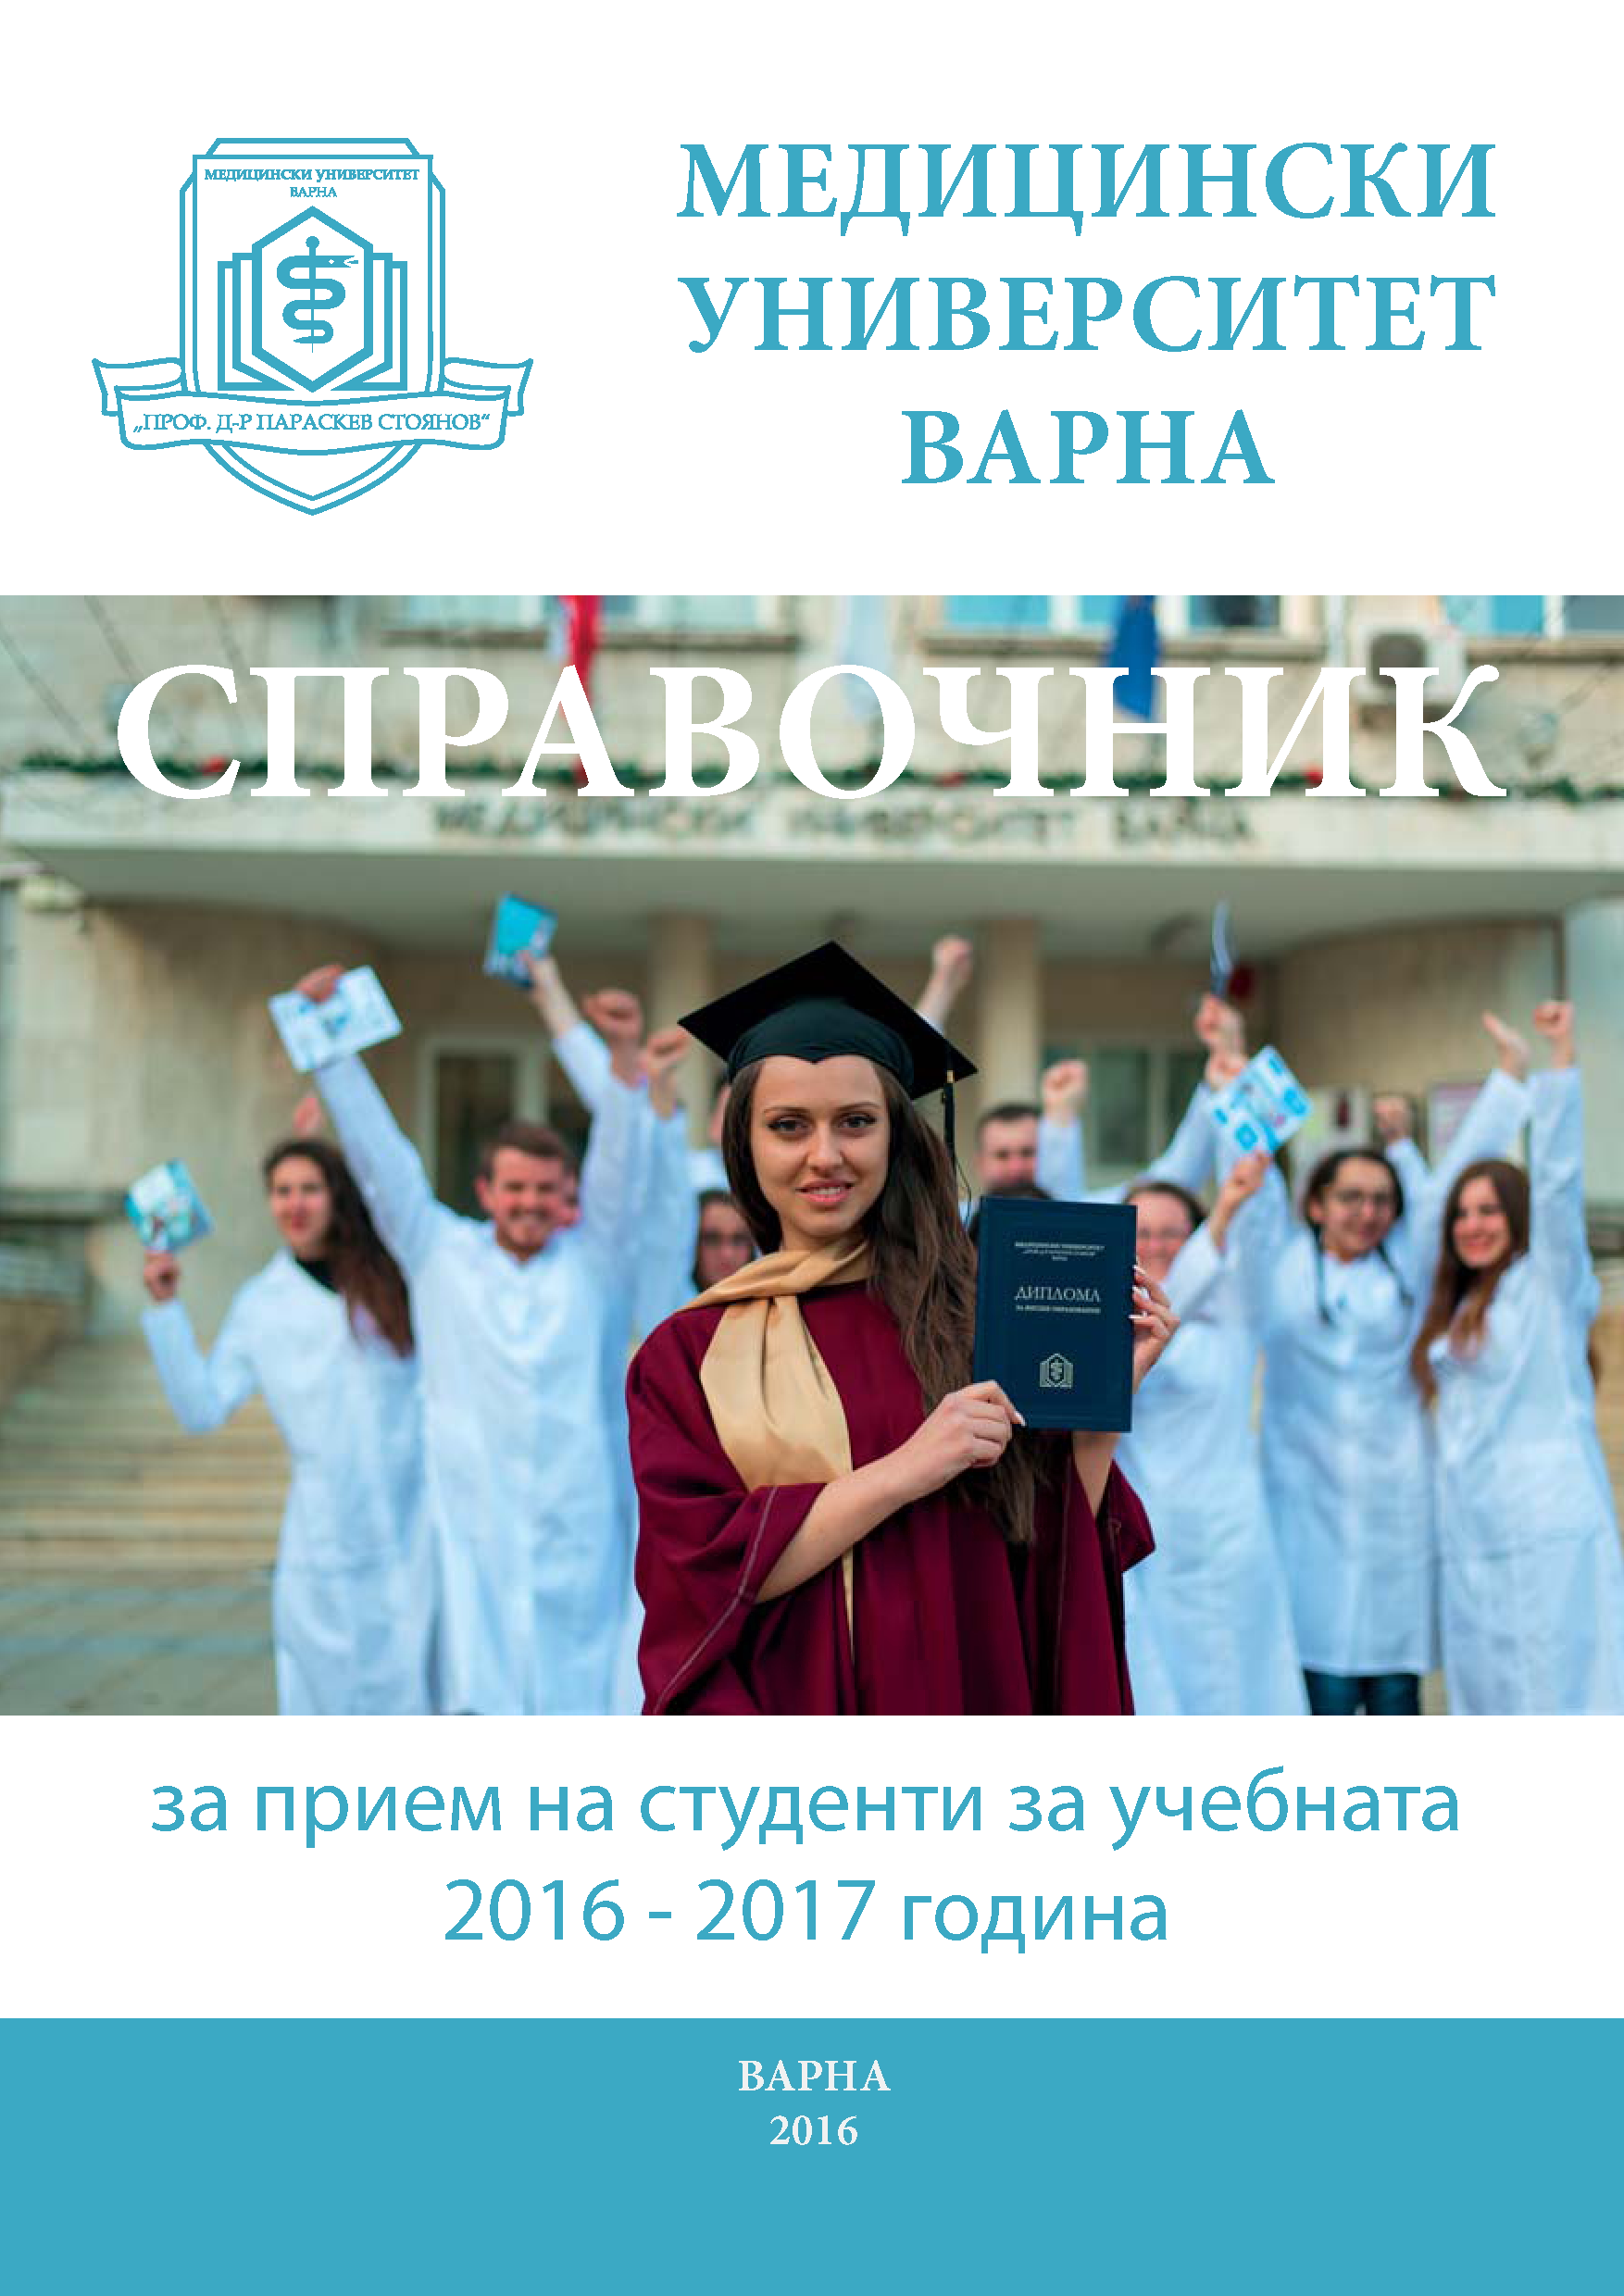 The Resource Book for Students' Admission for the Academic Year 2016/2017 Was Published